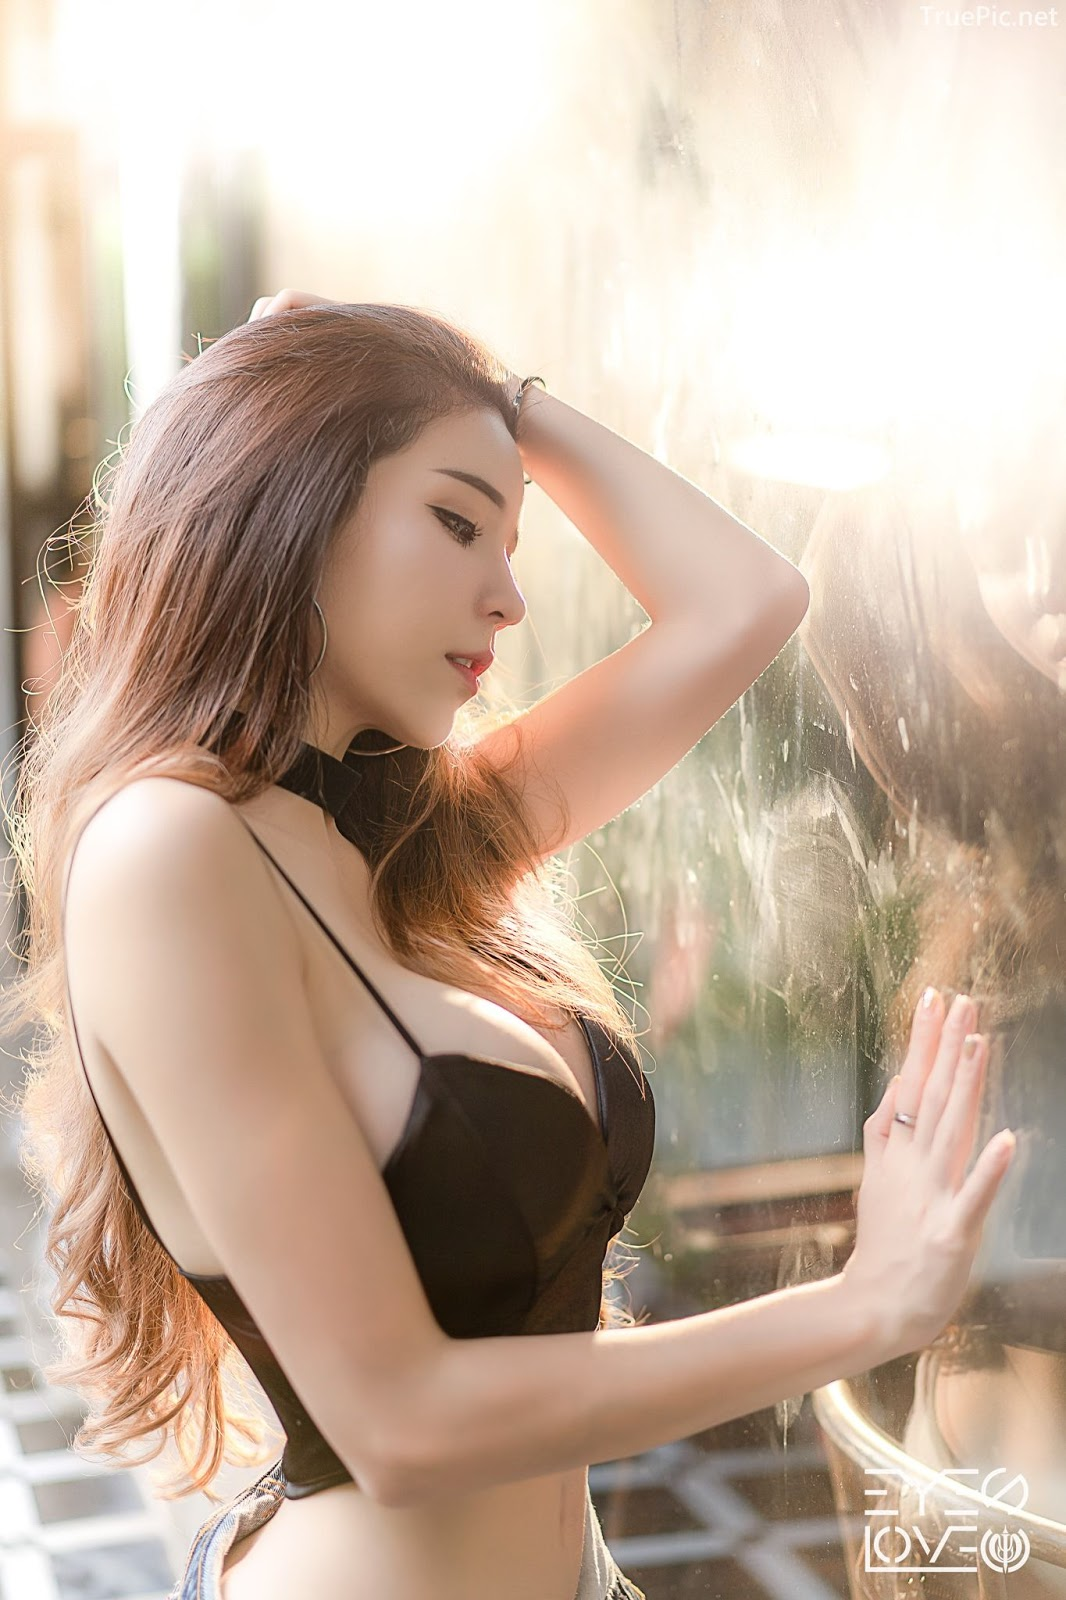 Thailand hot model - Janet Kanokwan Saesim - Black leather and jean - Picture 1